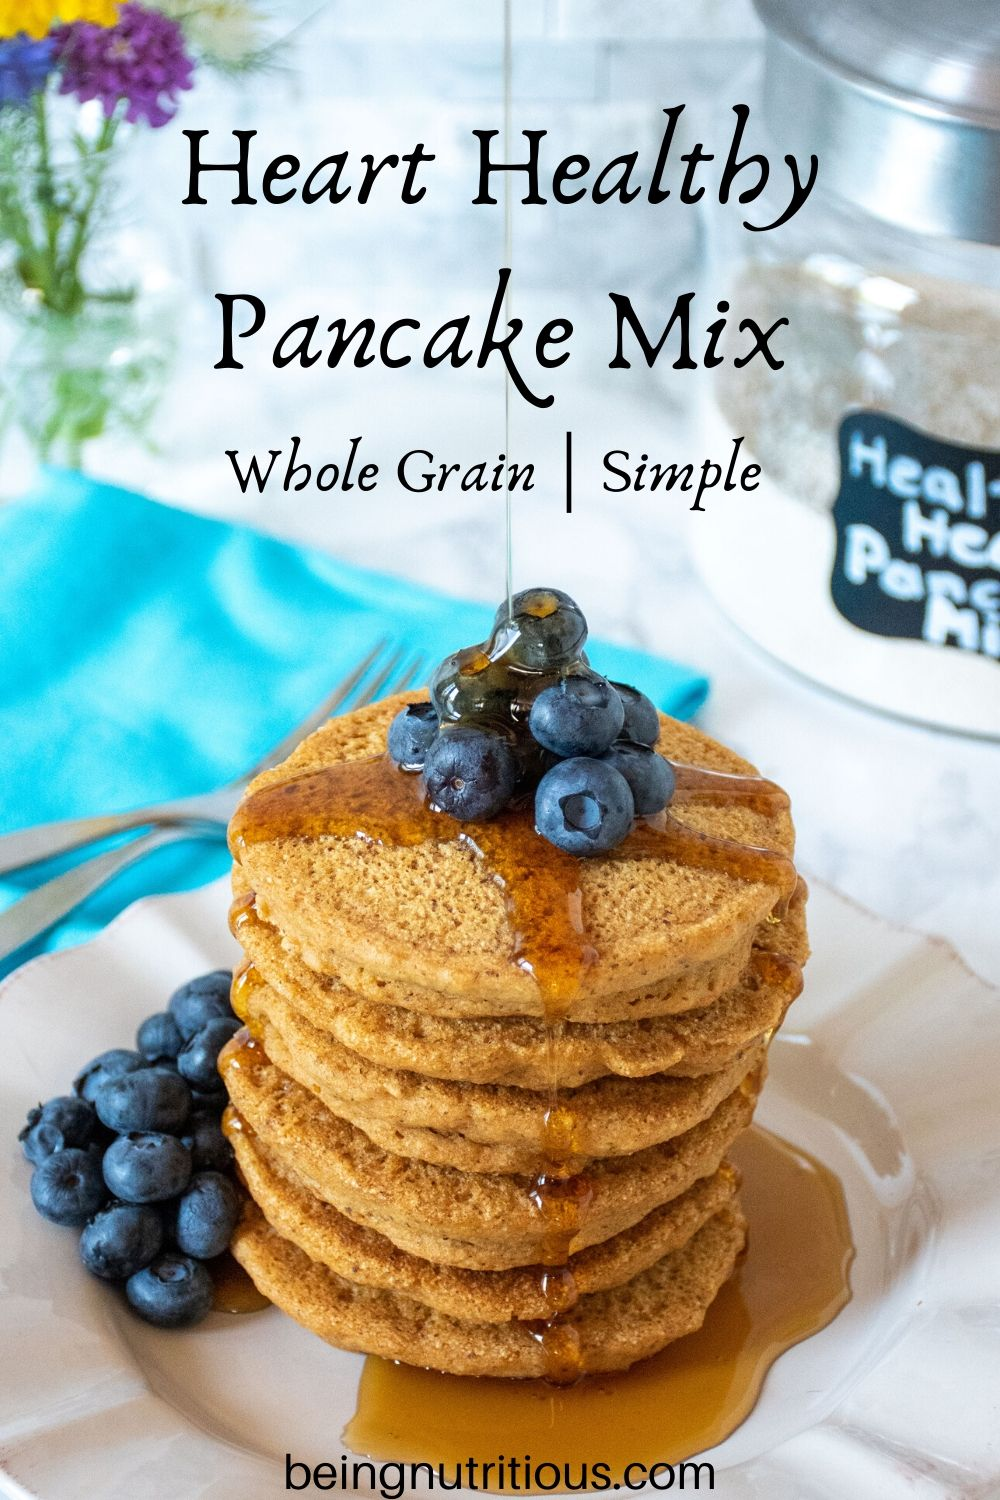 Stack of 6 whole wheat pancakes, with a pile of fresh blueberries on top, and syrup being poured over. Glass jar of heart healthy pancake mix is visible in the background.